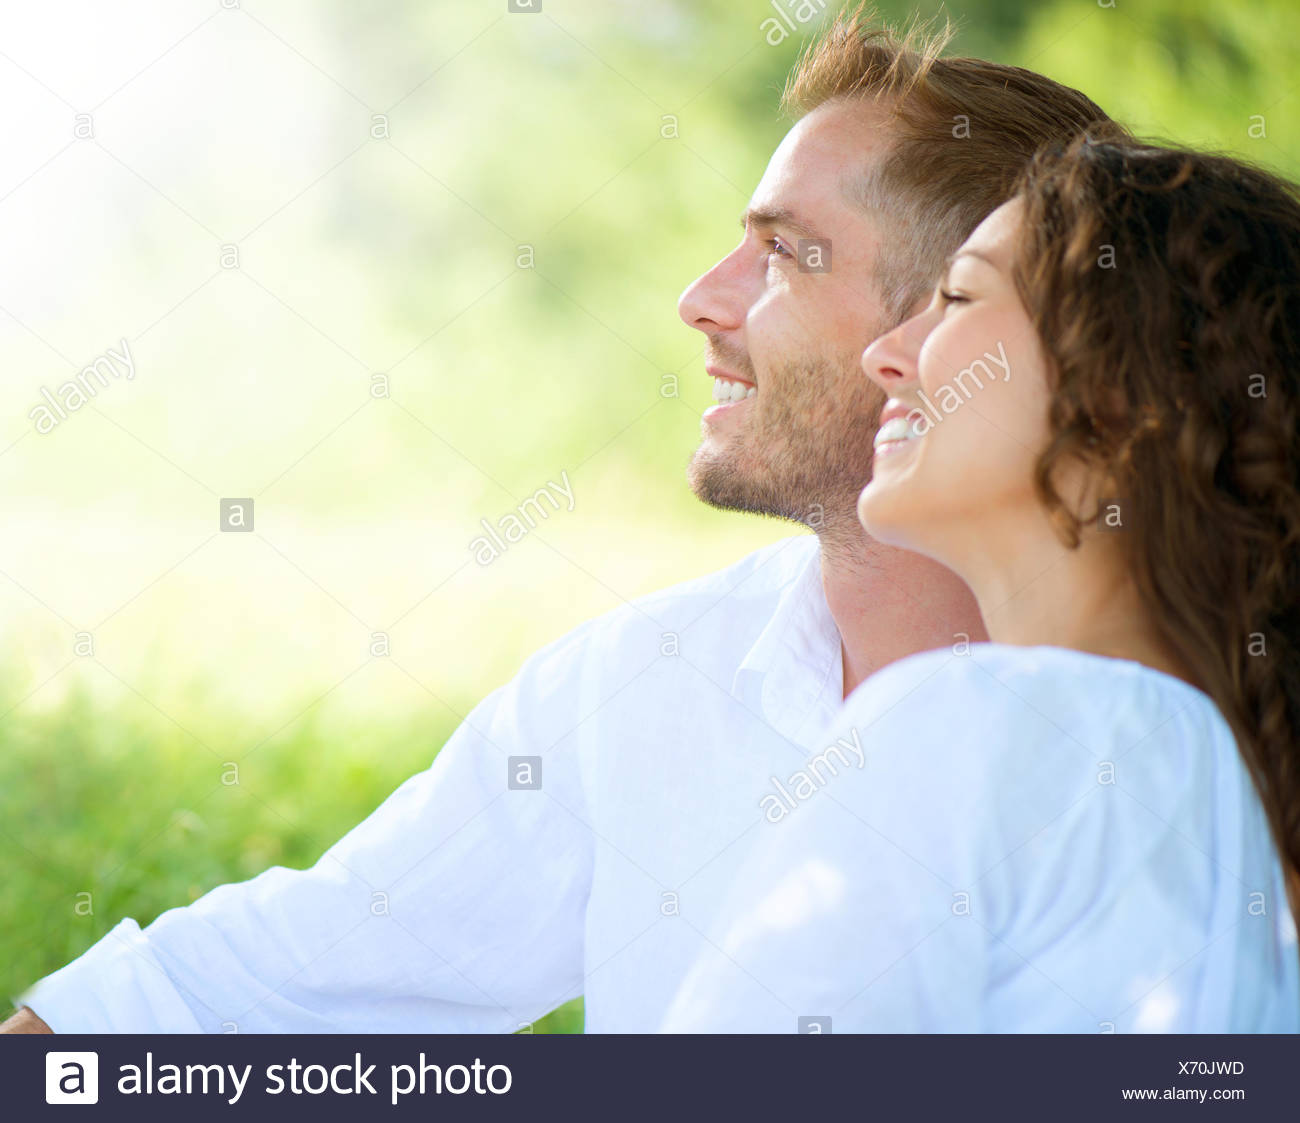 Happy Smiling Couple Relaxing in a Park. Picnic - Stock Image